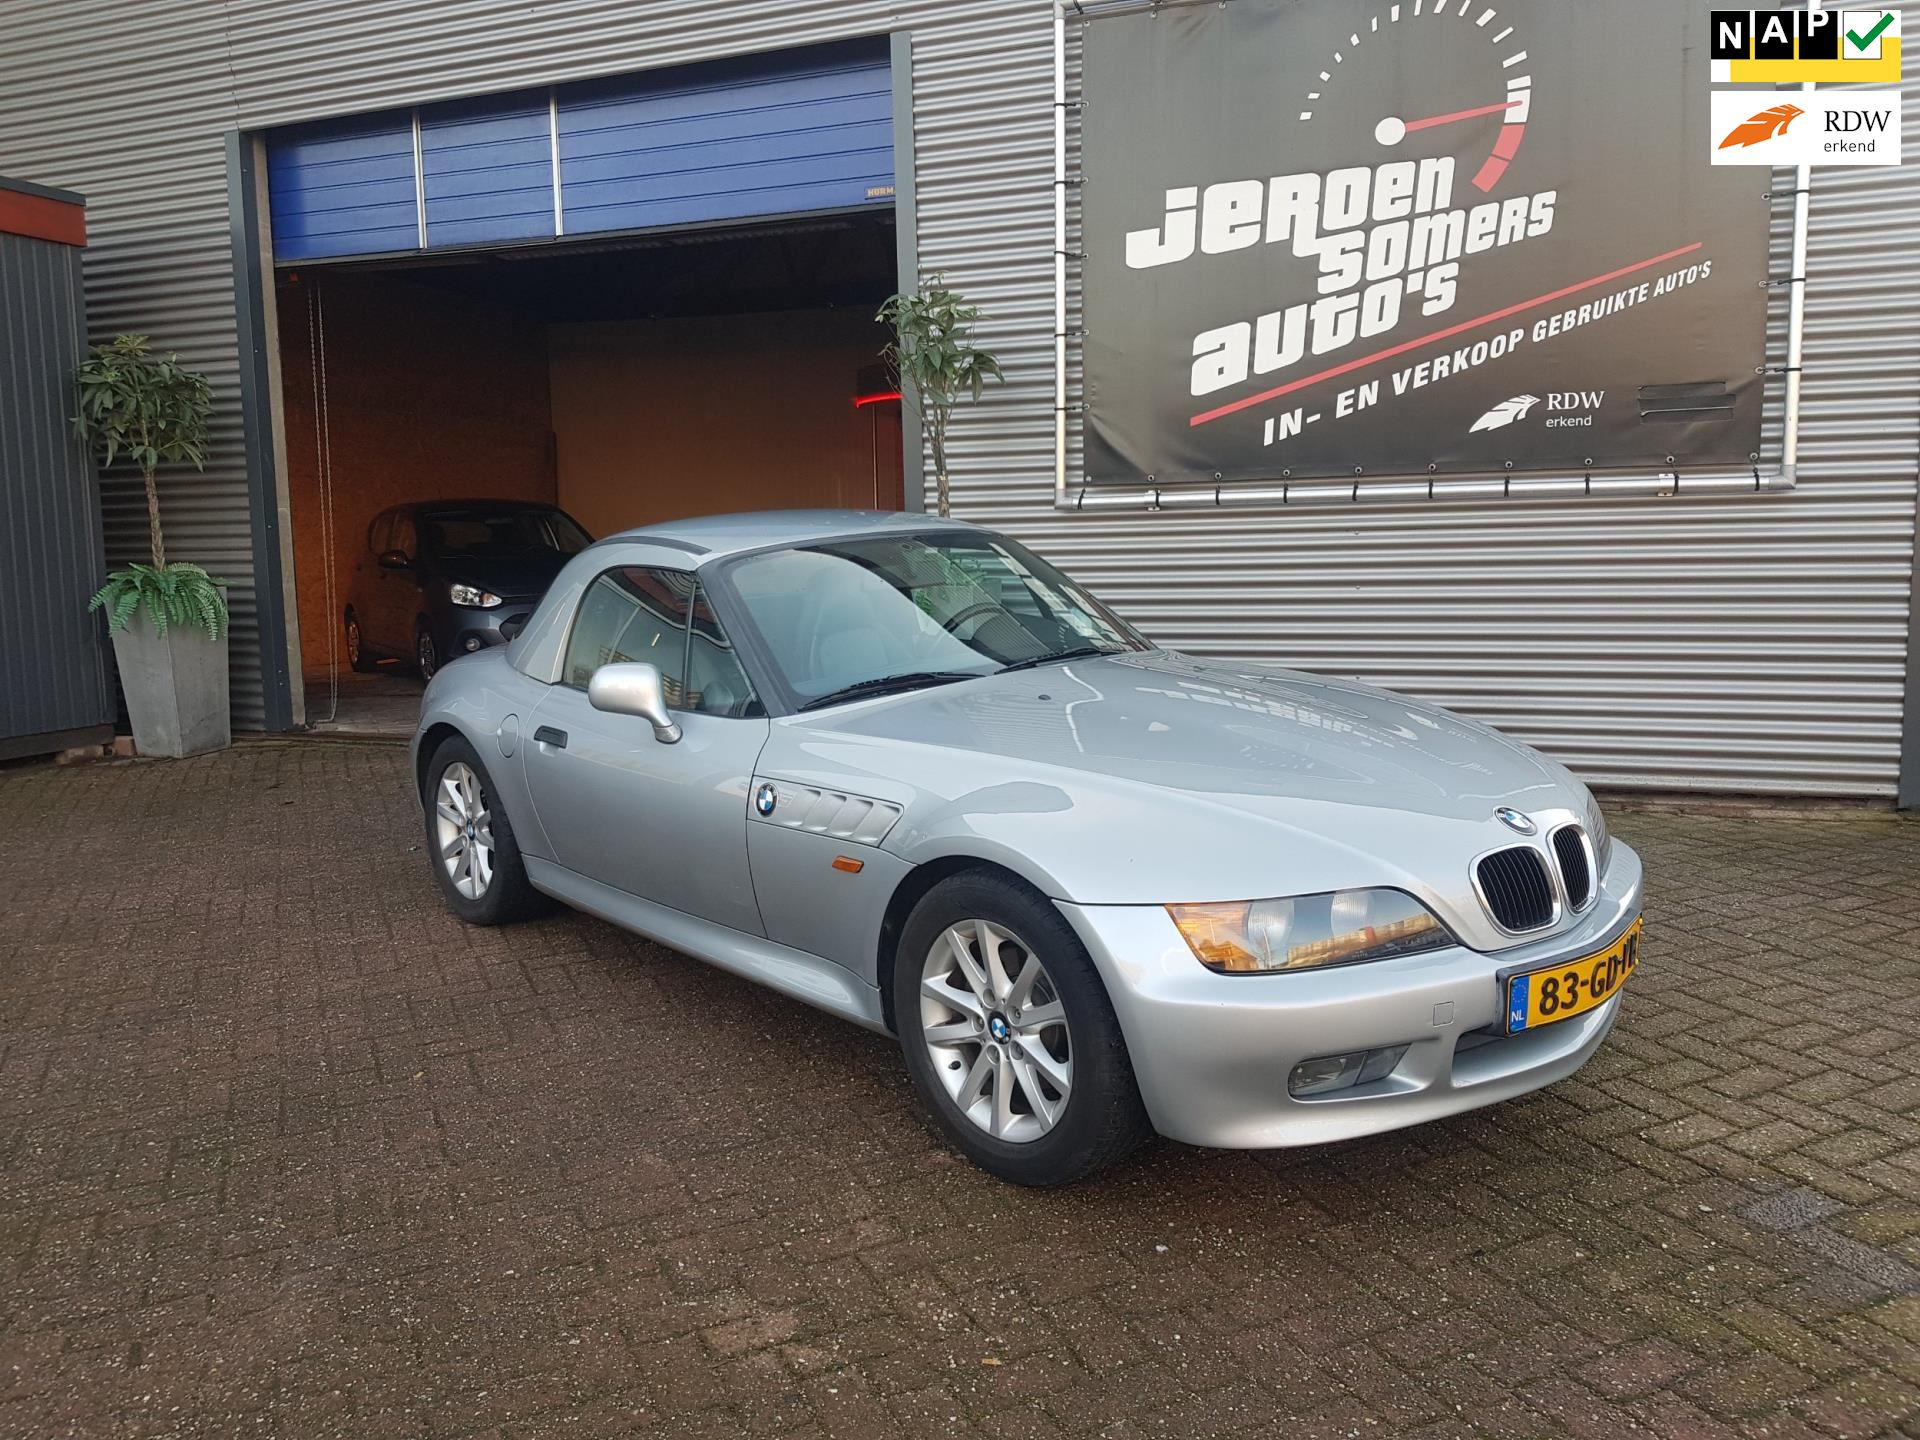 BMW Z3 Roadster occasion - Jeroen Somers Auto´s